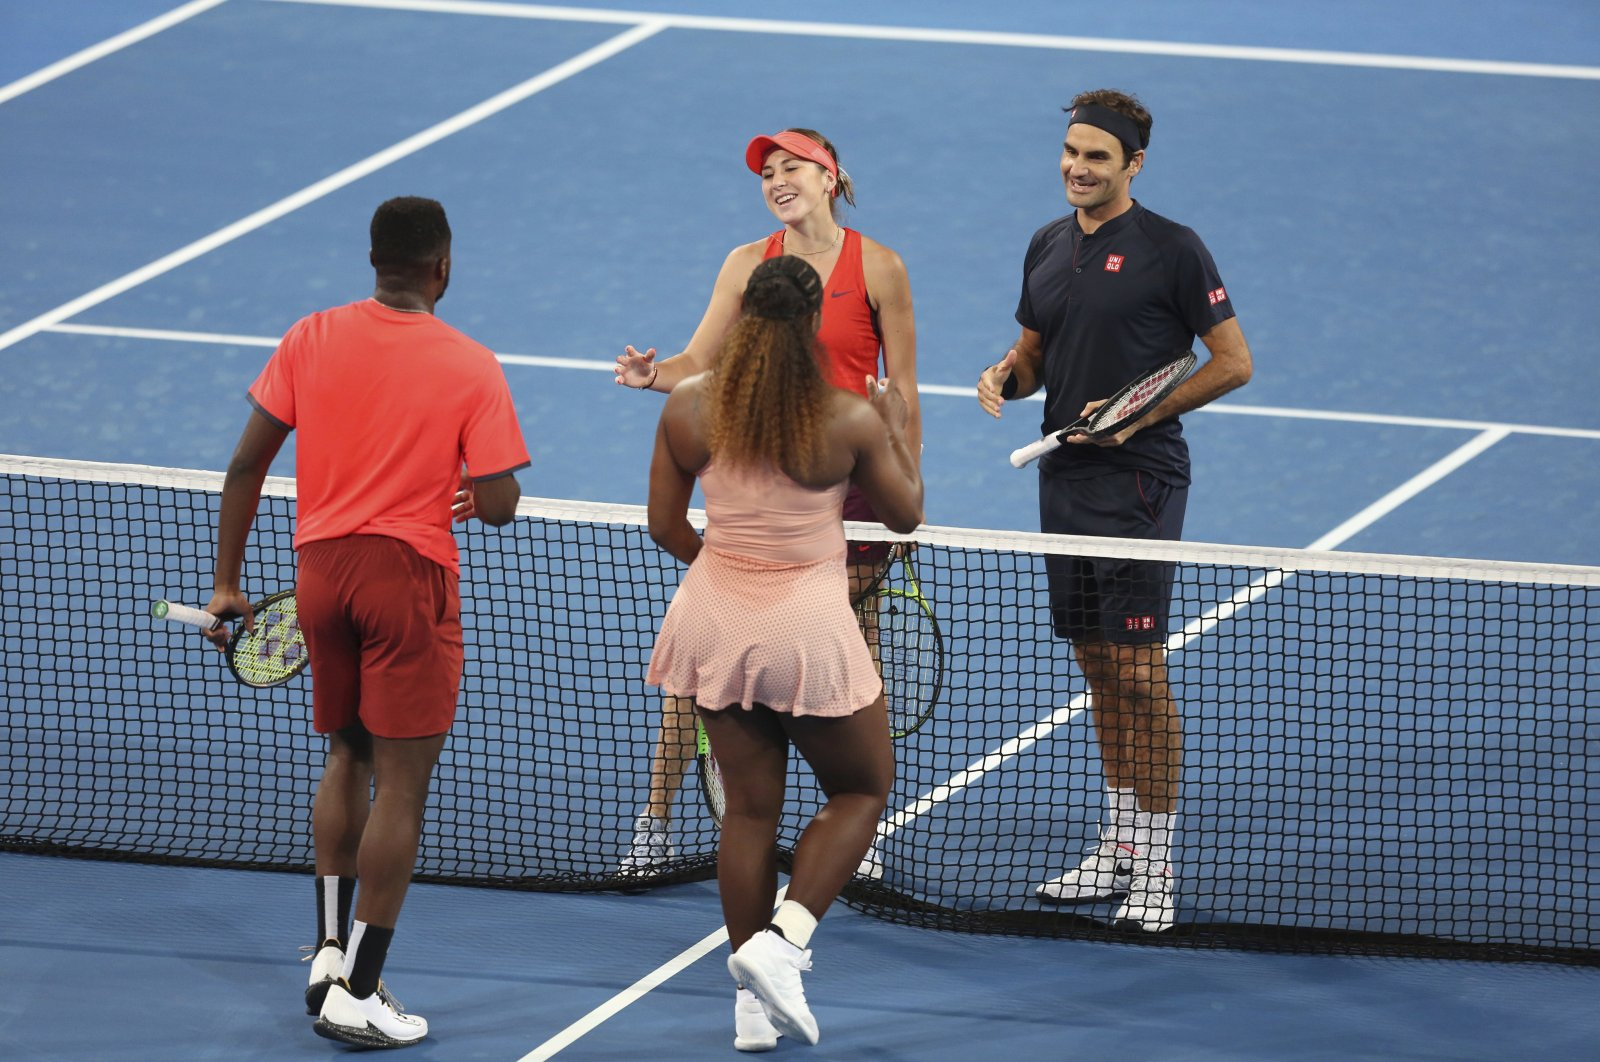 Roger Federer and Belinda Bencic wait at the net after winning their mixed doubles match against Frances Tiafoe and Serena Williams the Hopman Cup in Perth, Australia, Jan. 1, 2019. (AP Photo)